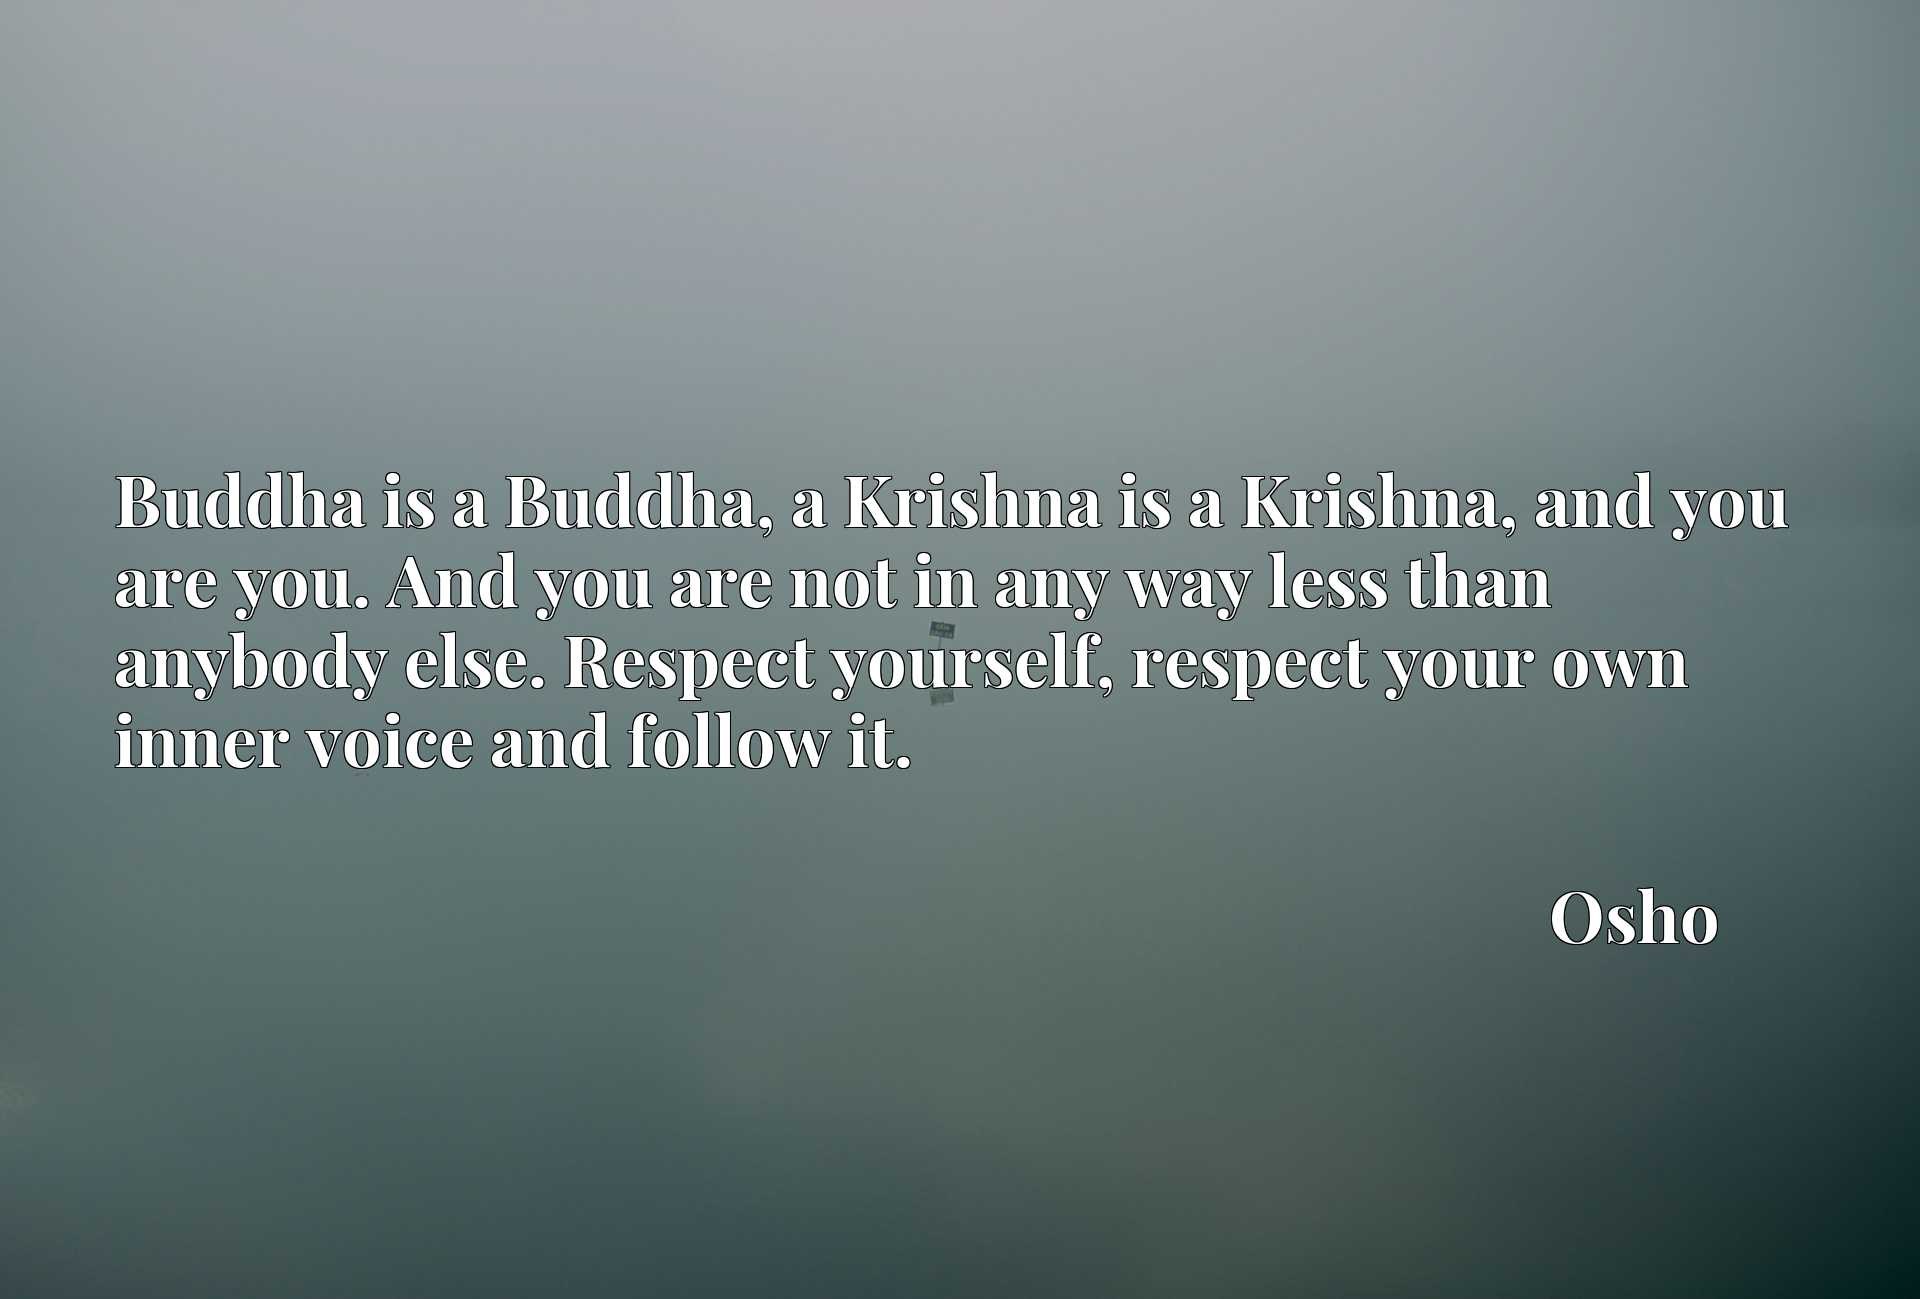 Buddha is a Buddha, a Krishna is a Krishna, and you are you. And you are not in any way less than anybody else. Respect yourself, respect your own inner voice and follow it.